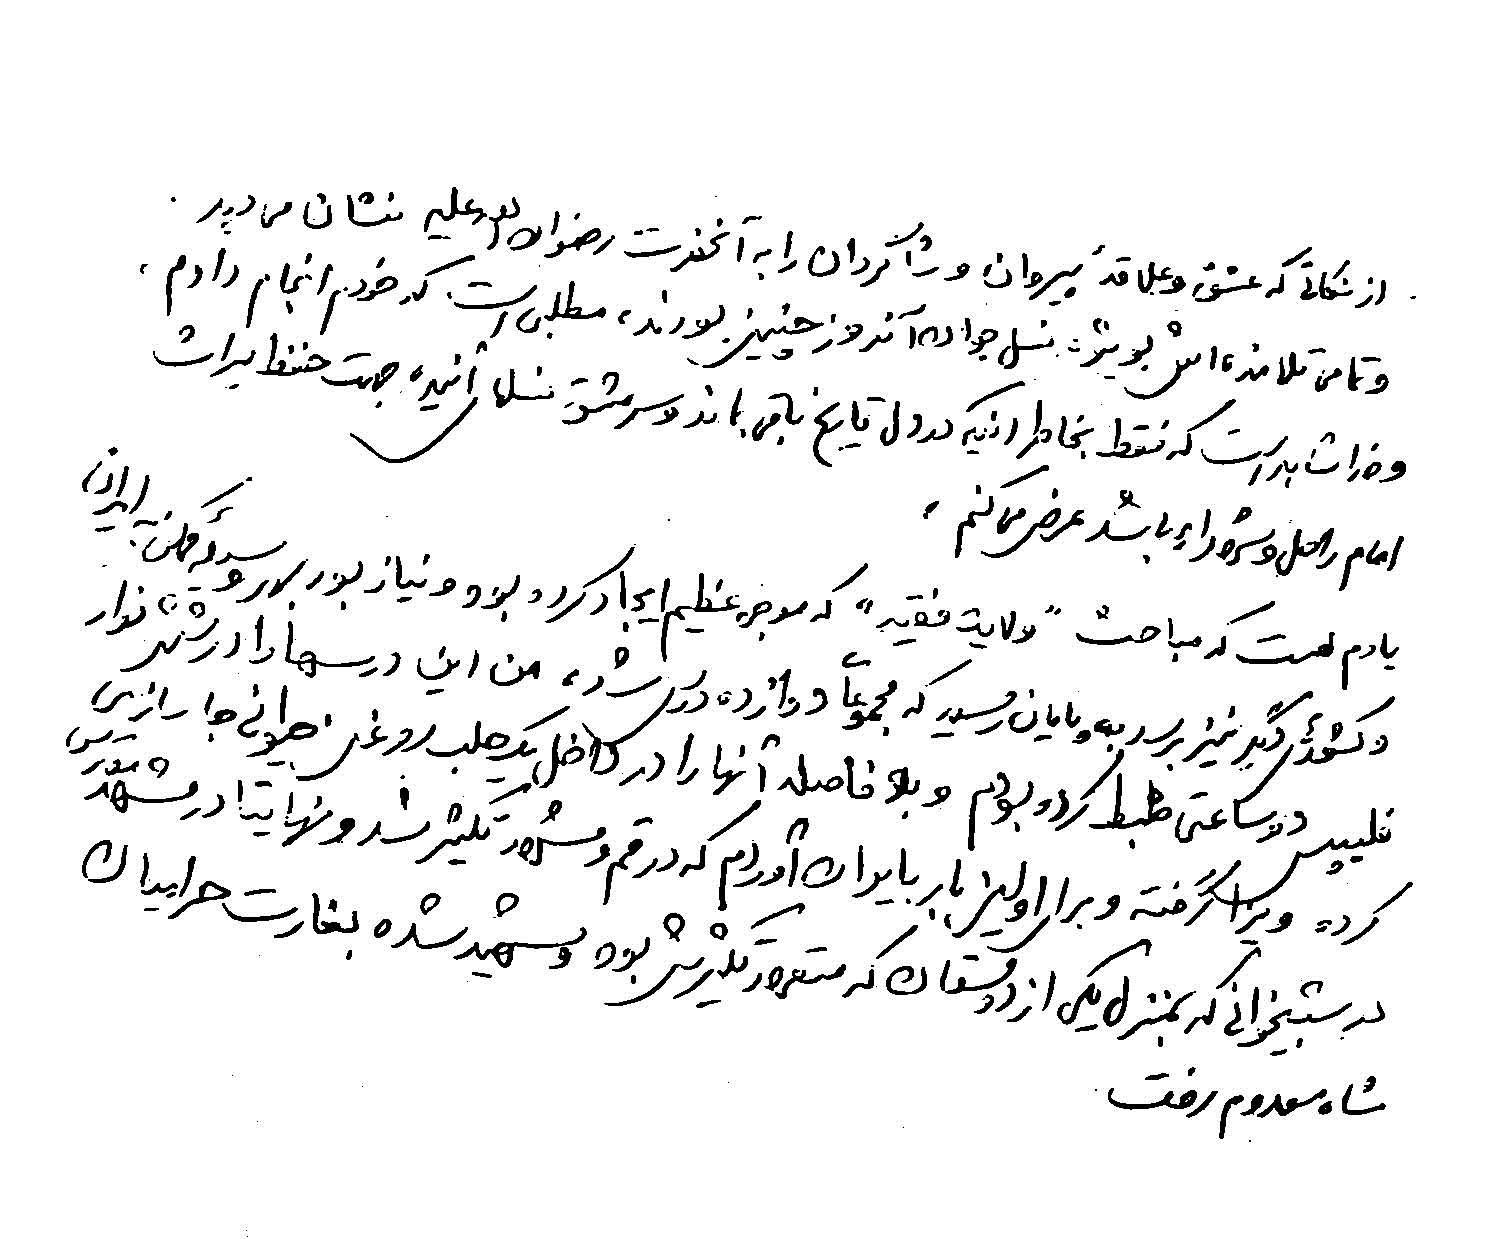 430-p163-181_Page_10